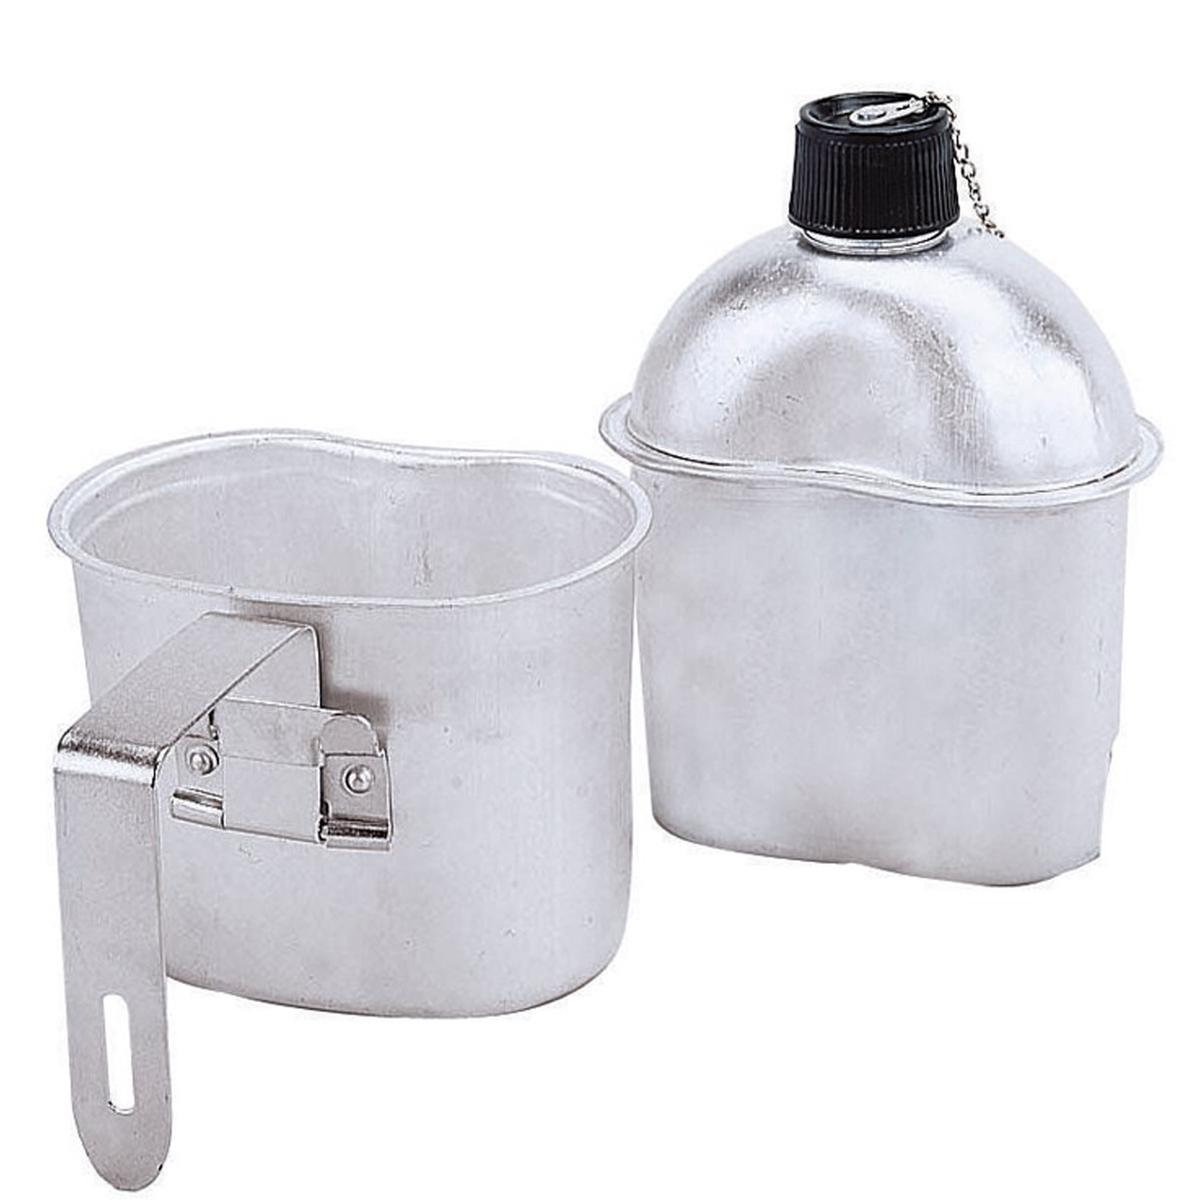 G.I. Style Aluminum Canteen Cup